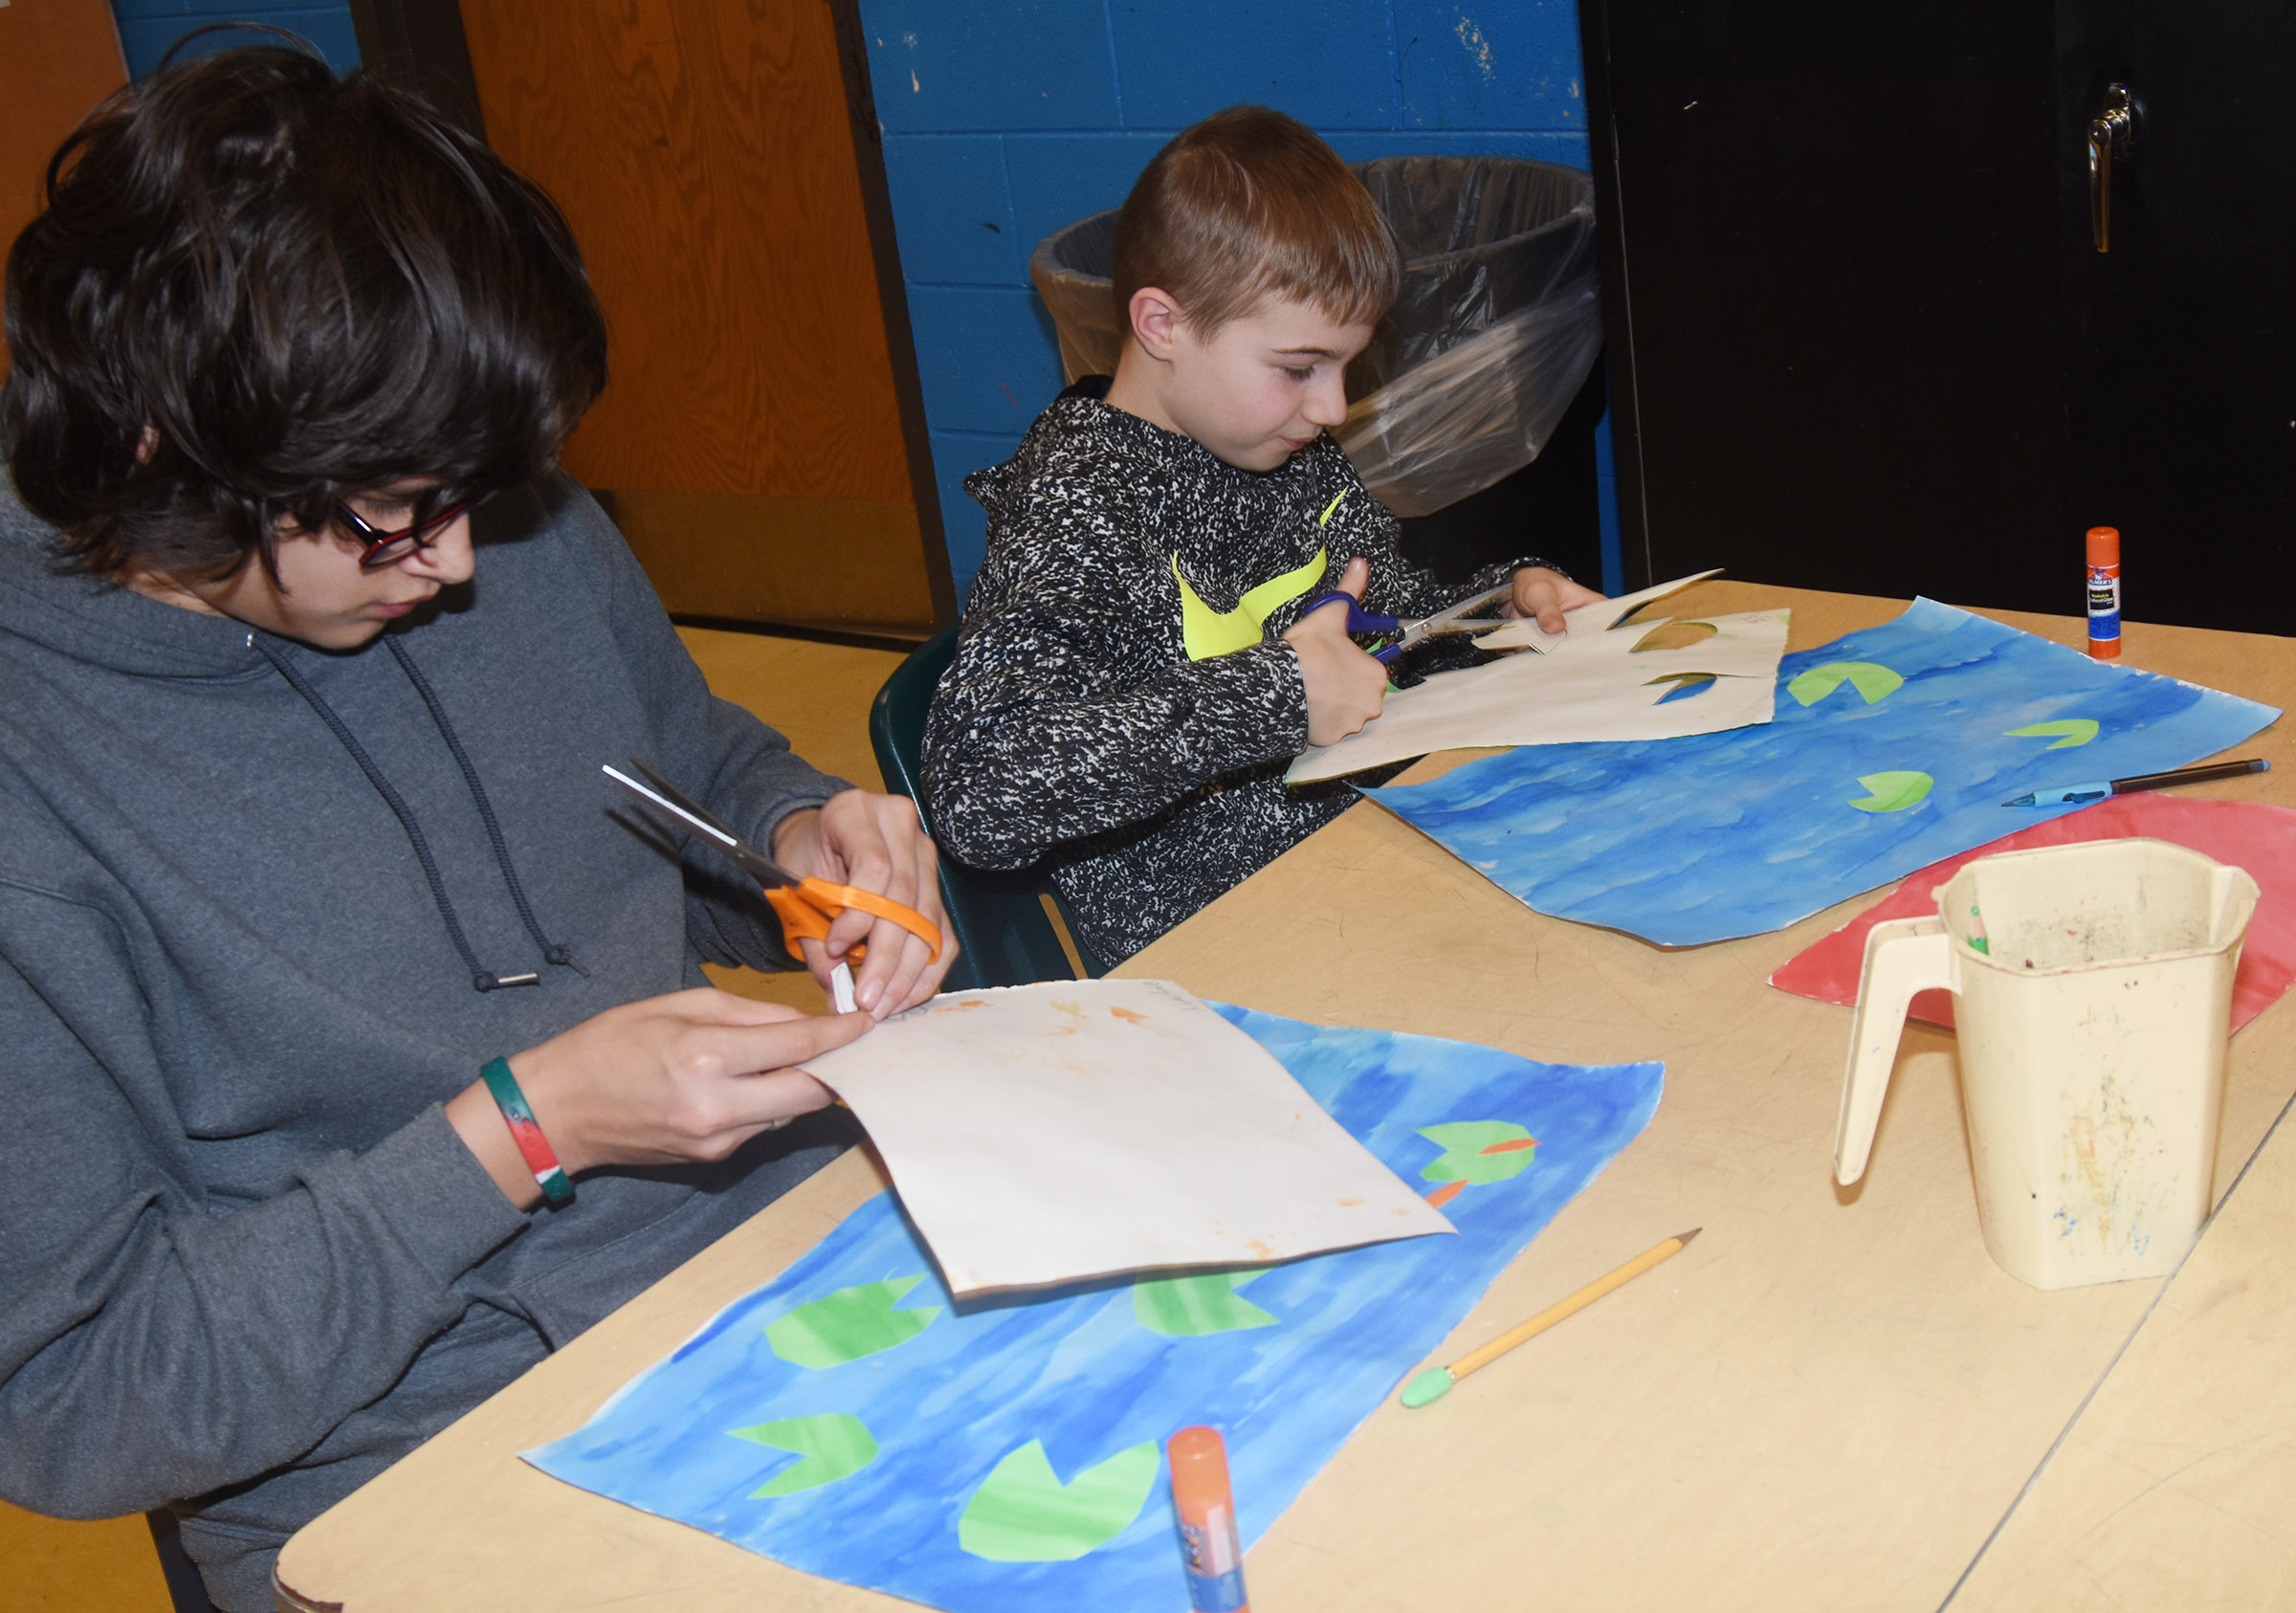 CMS eighth-grader Nate Arachi, at left, and Ethan Cox cut out their lily pads to glue on their paintings.